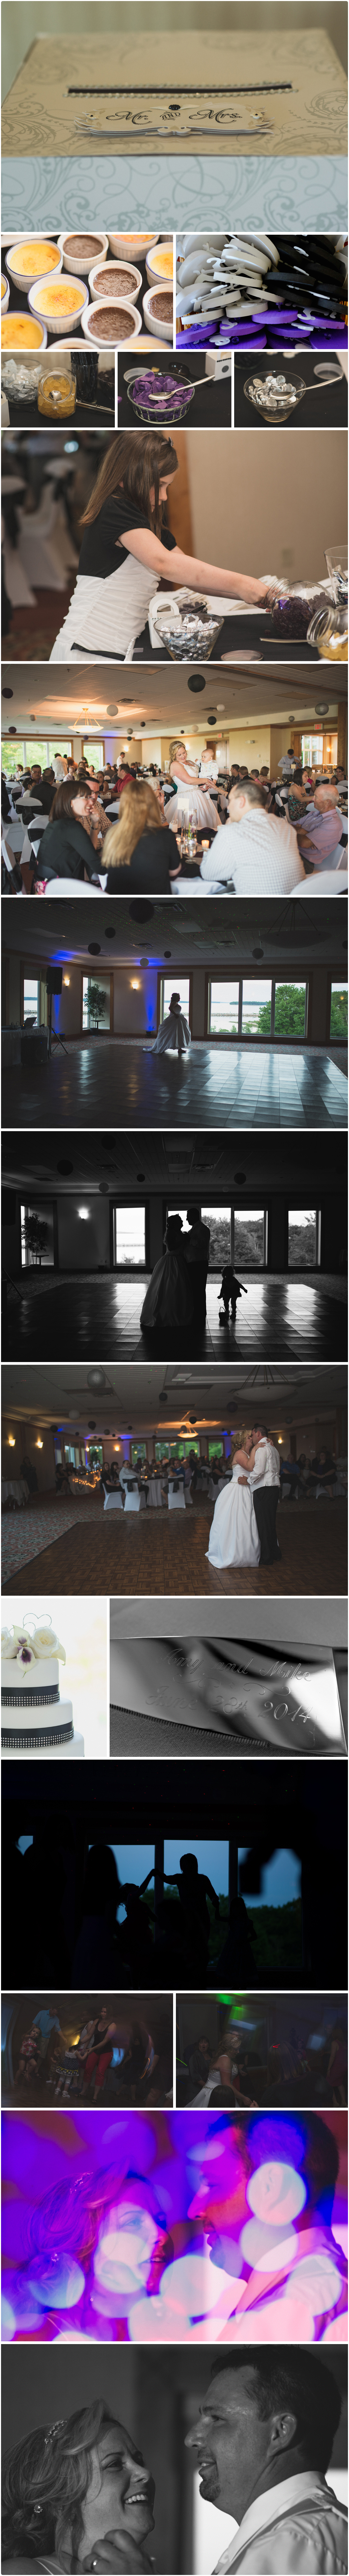 atlantica oak island wedding photos one blue fish